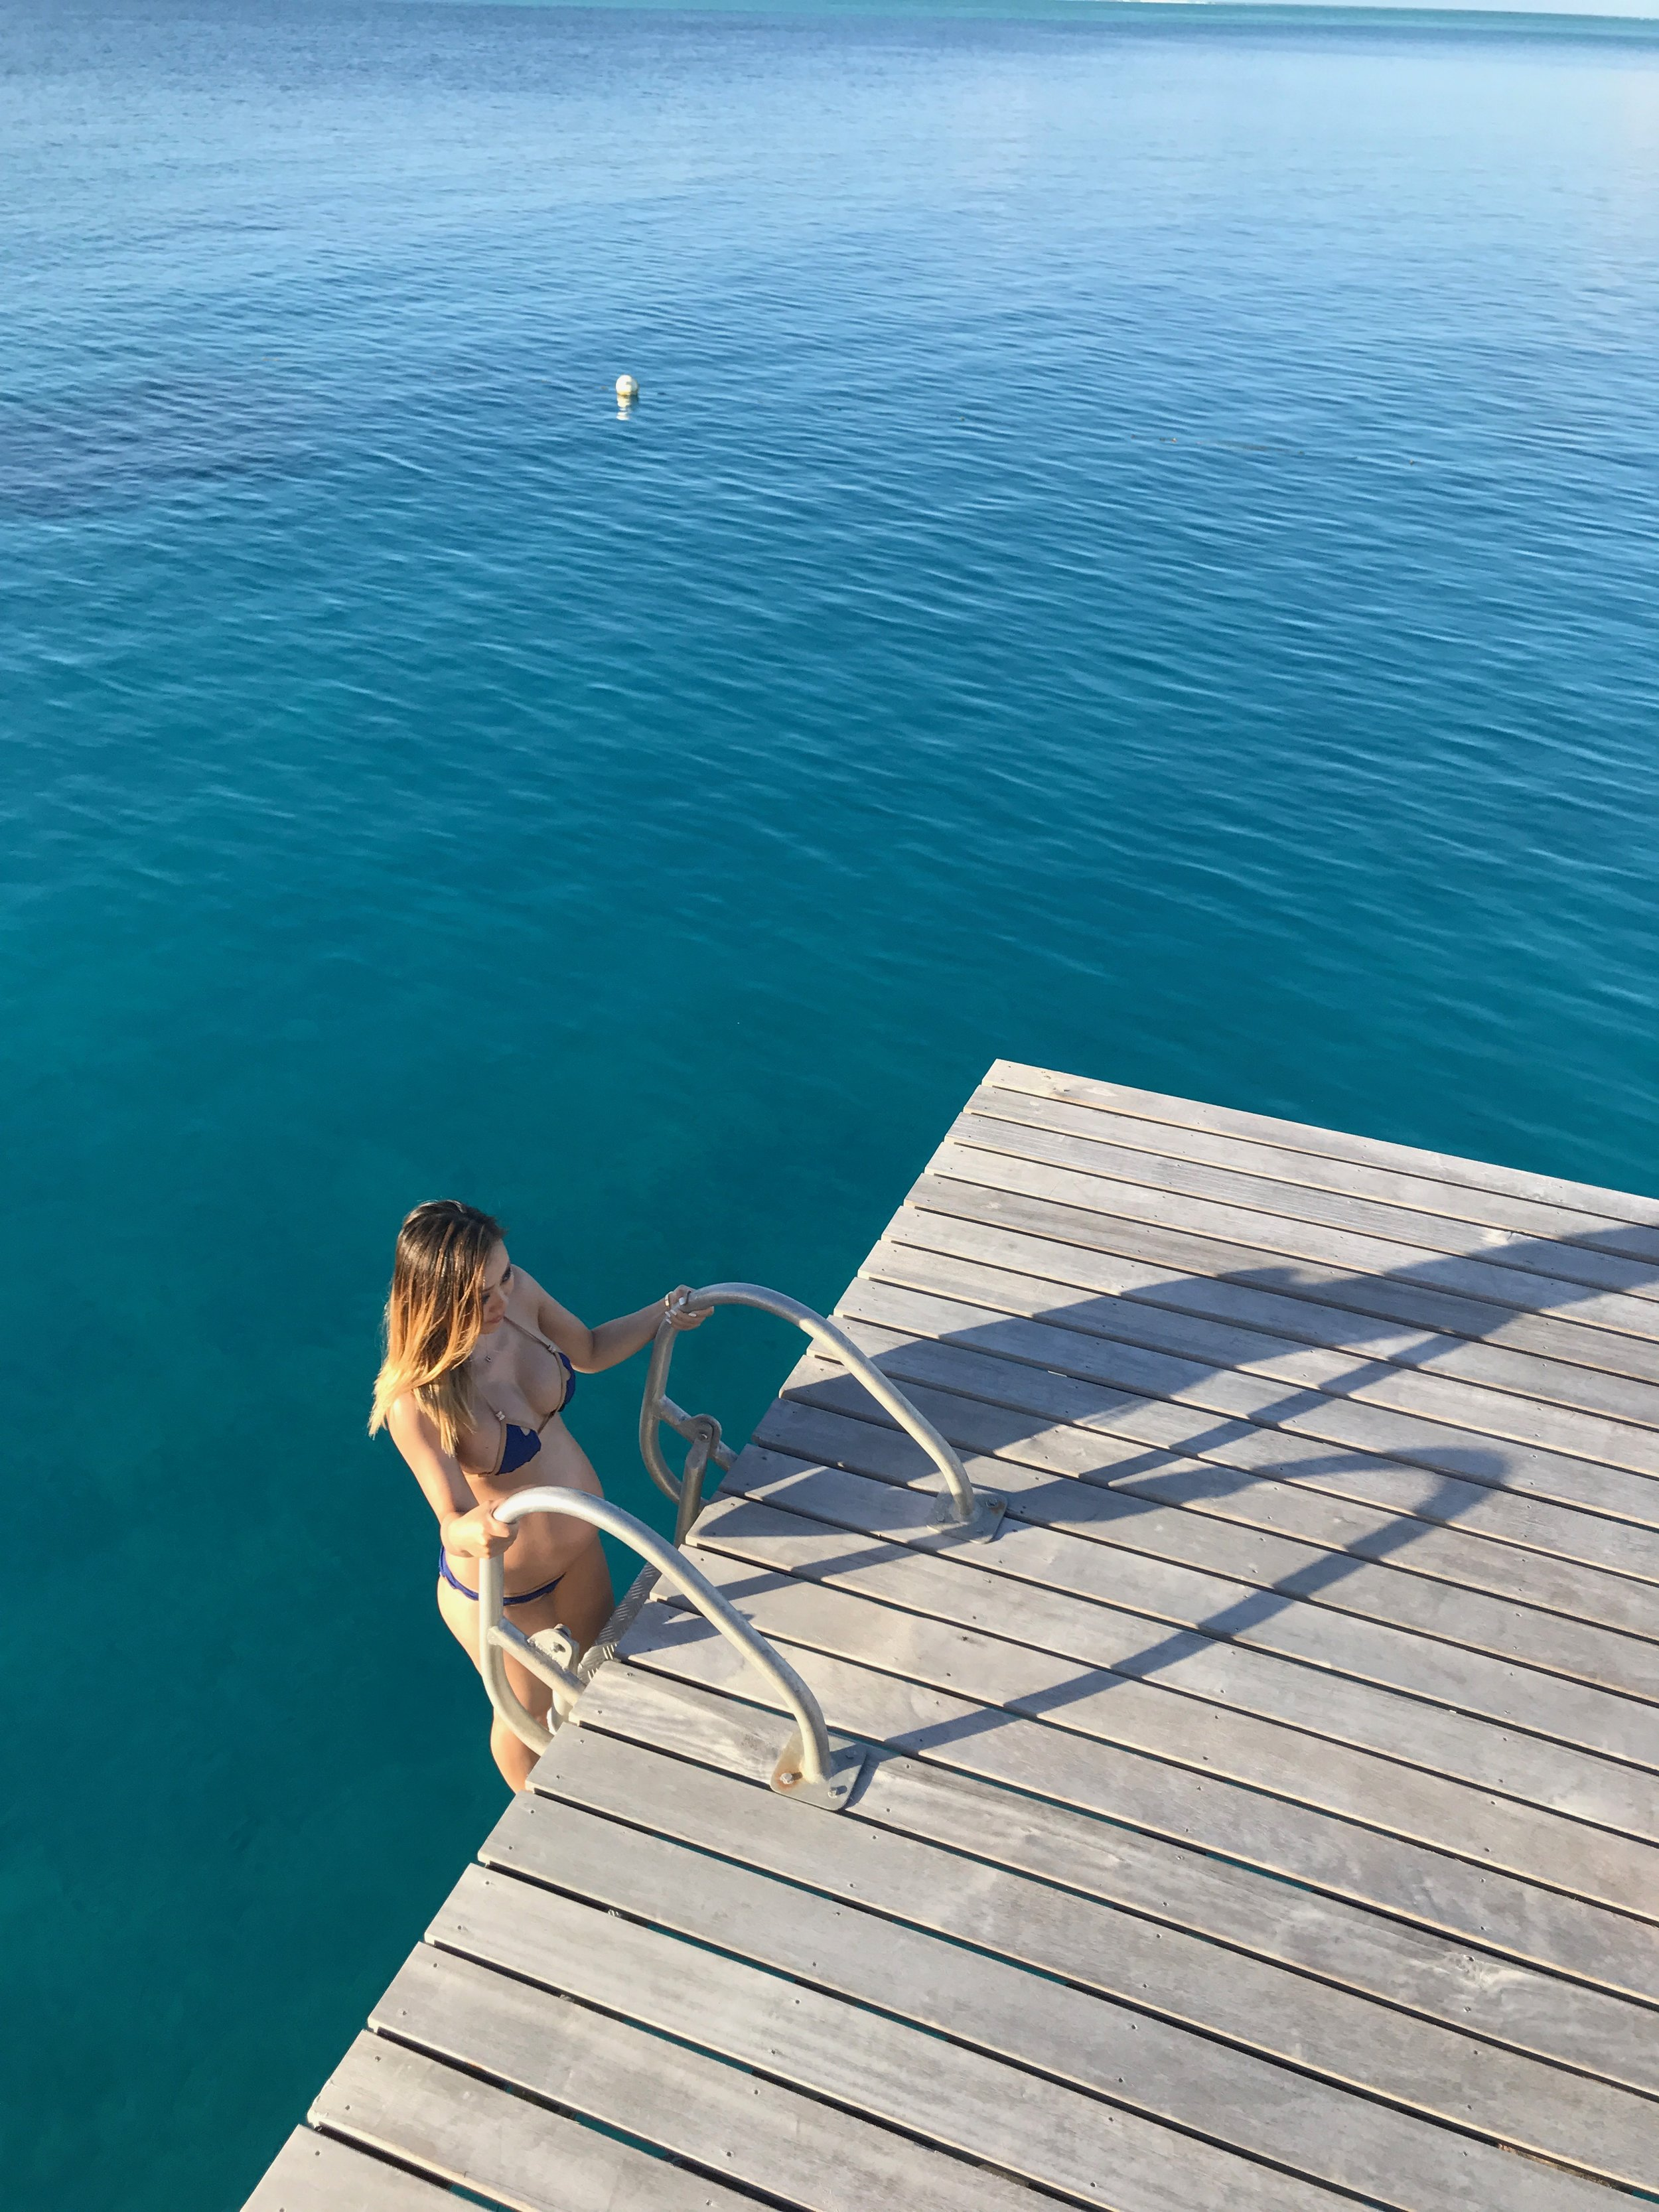 Or take a dip right off your own villa deck into the clear waters for a morning swim